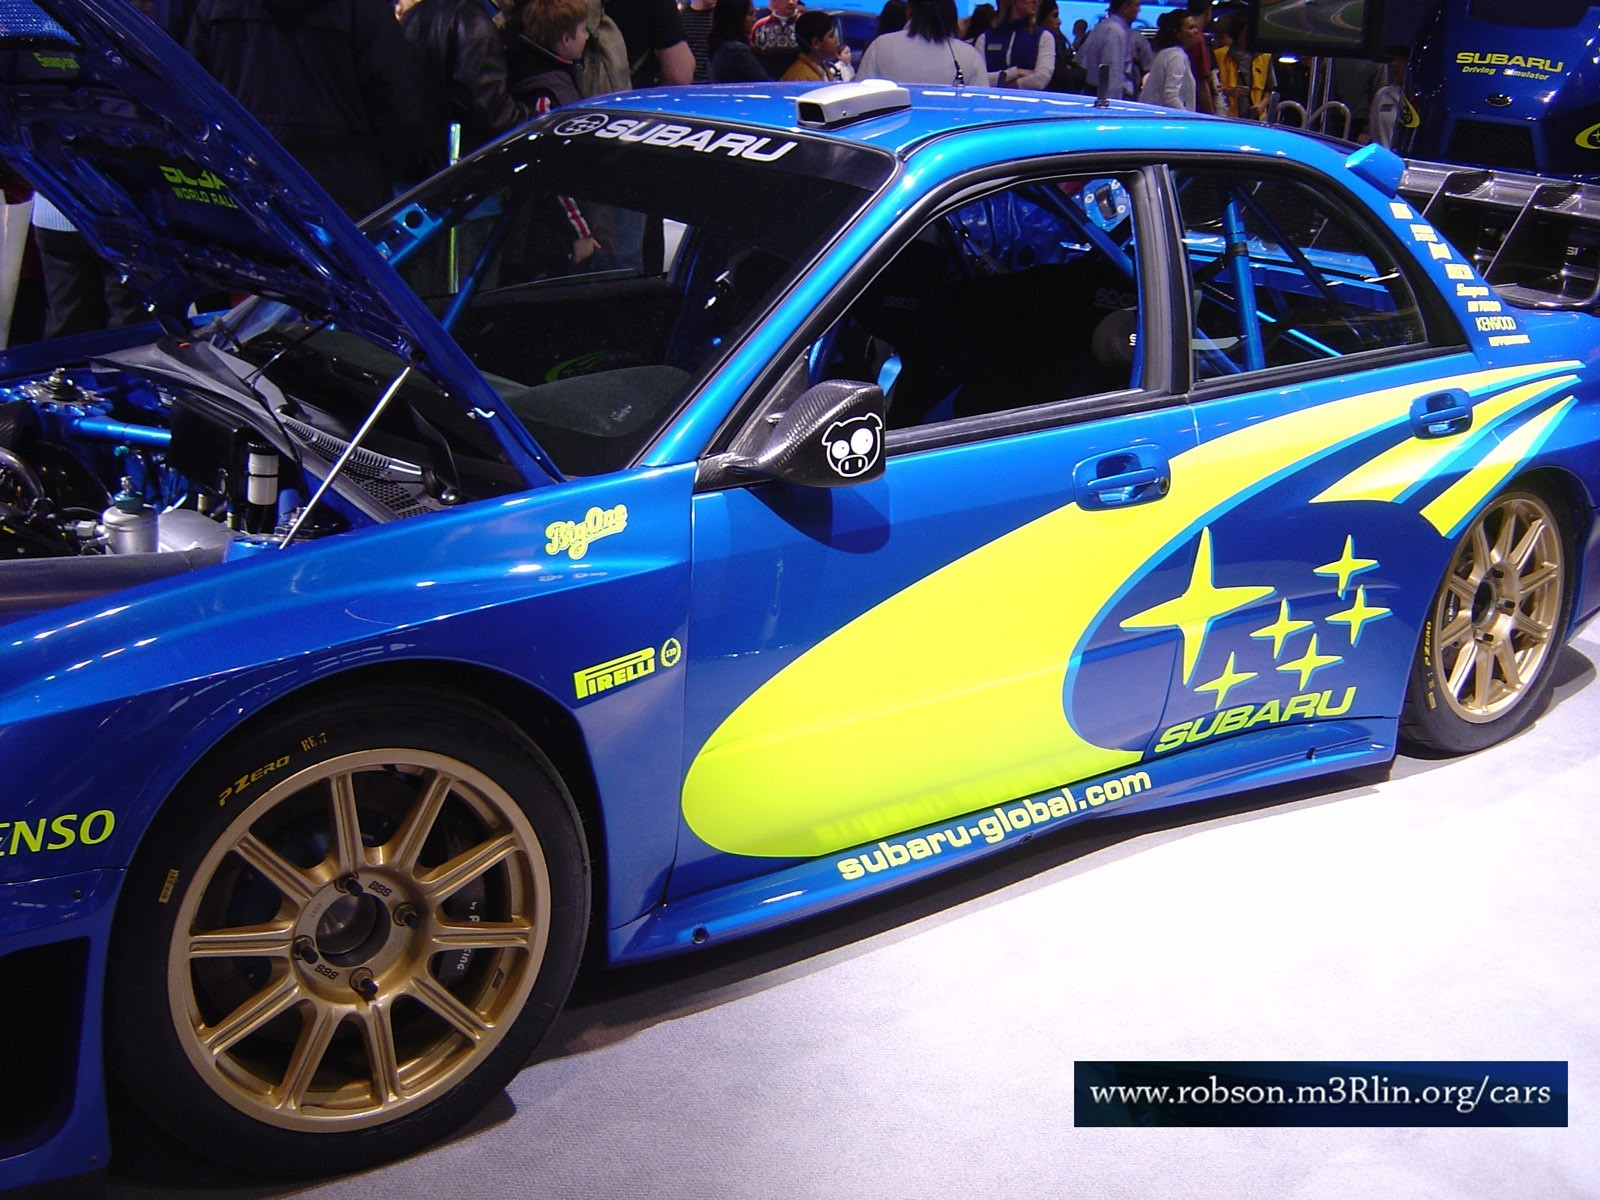 Impreza wrc Car cars HD Wallpaper